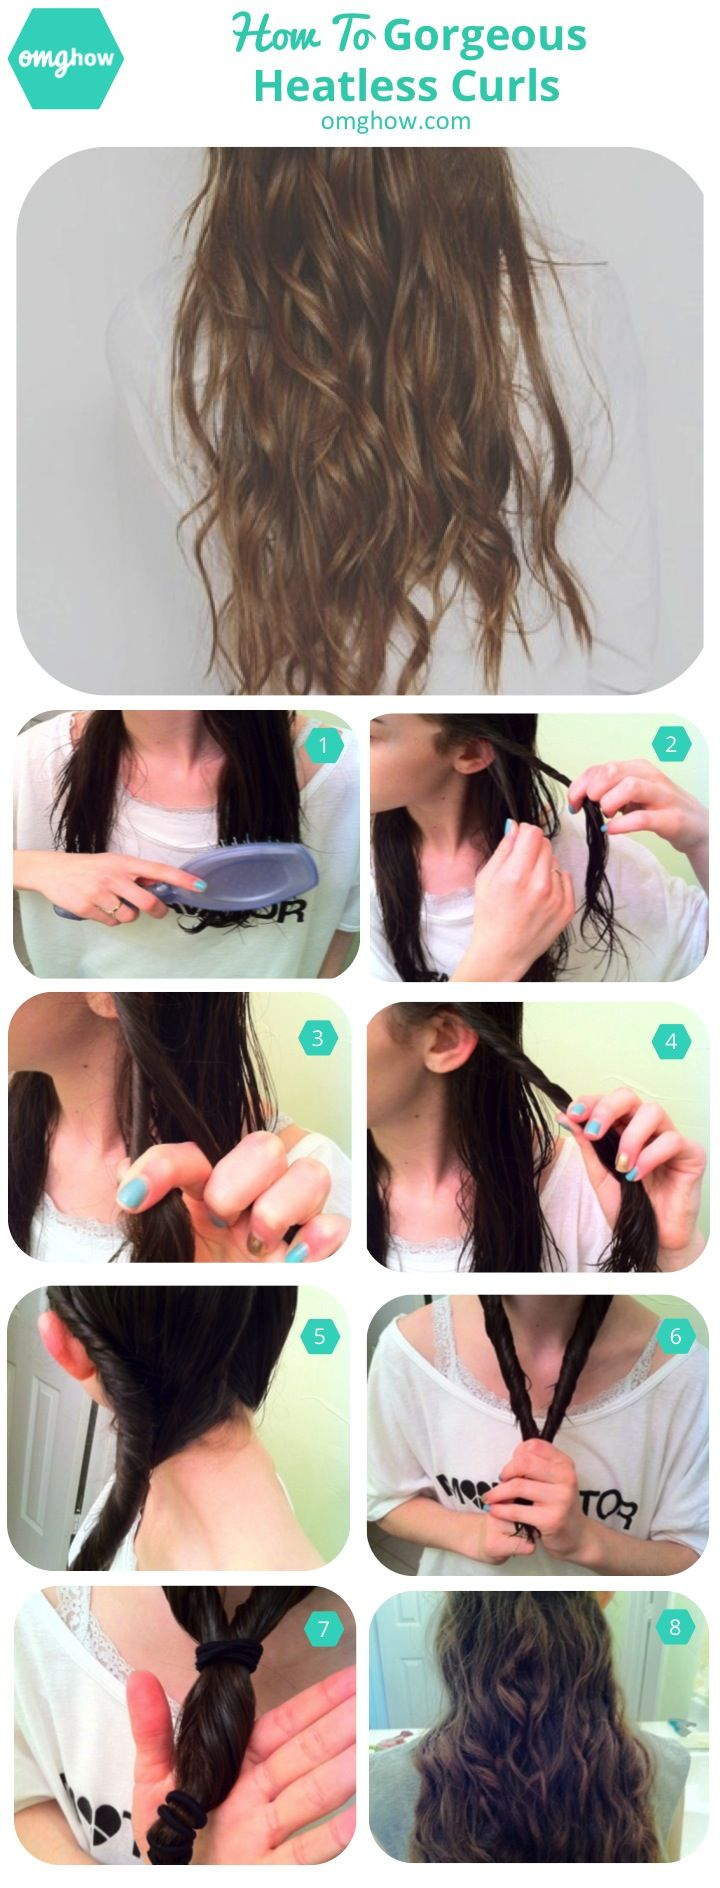 How To Wake Up With Gorgeous Heatless Curls via omghow.com